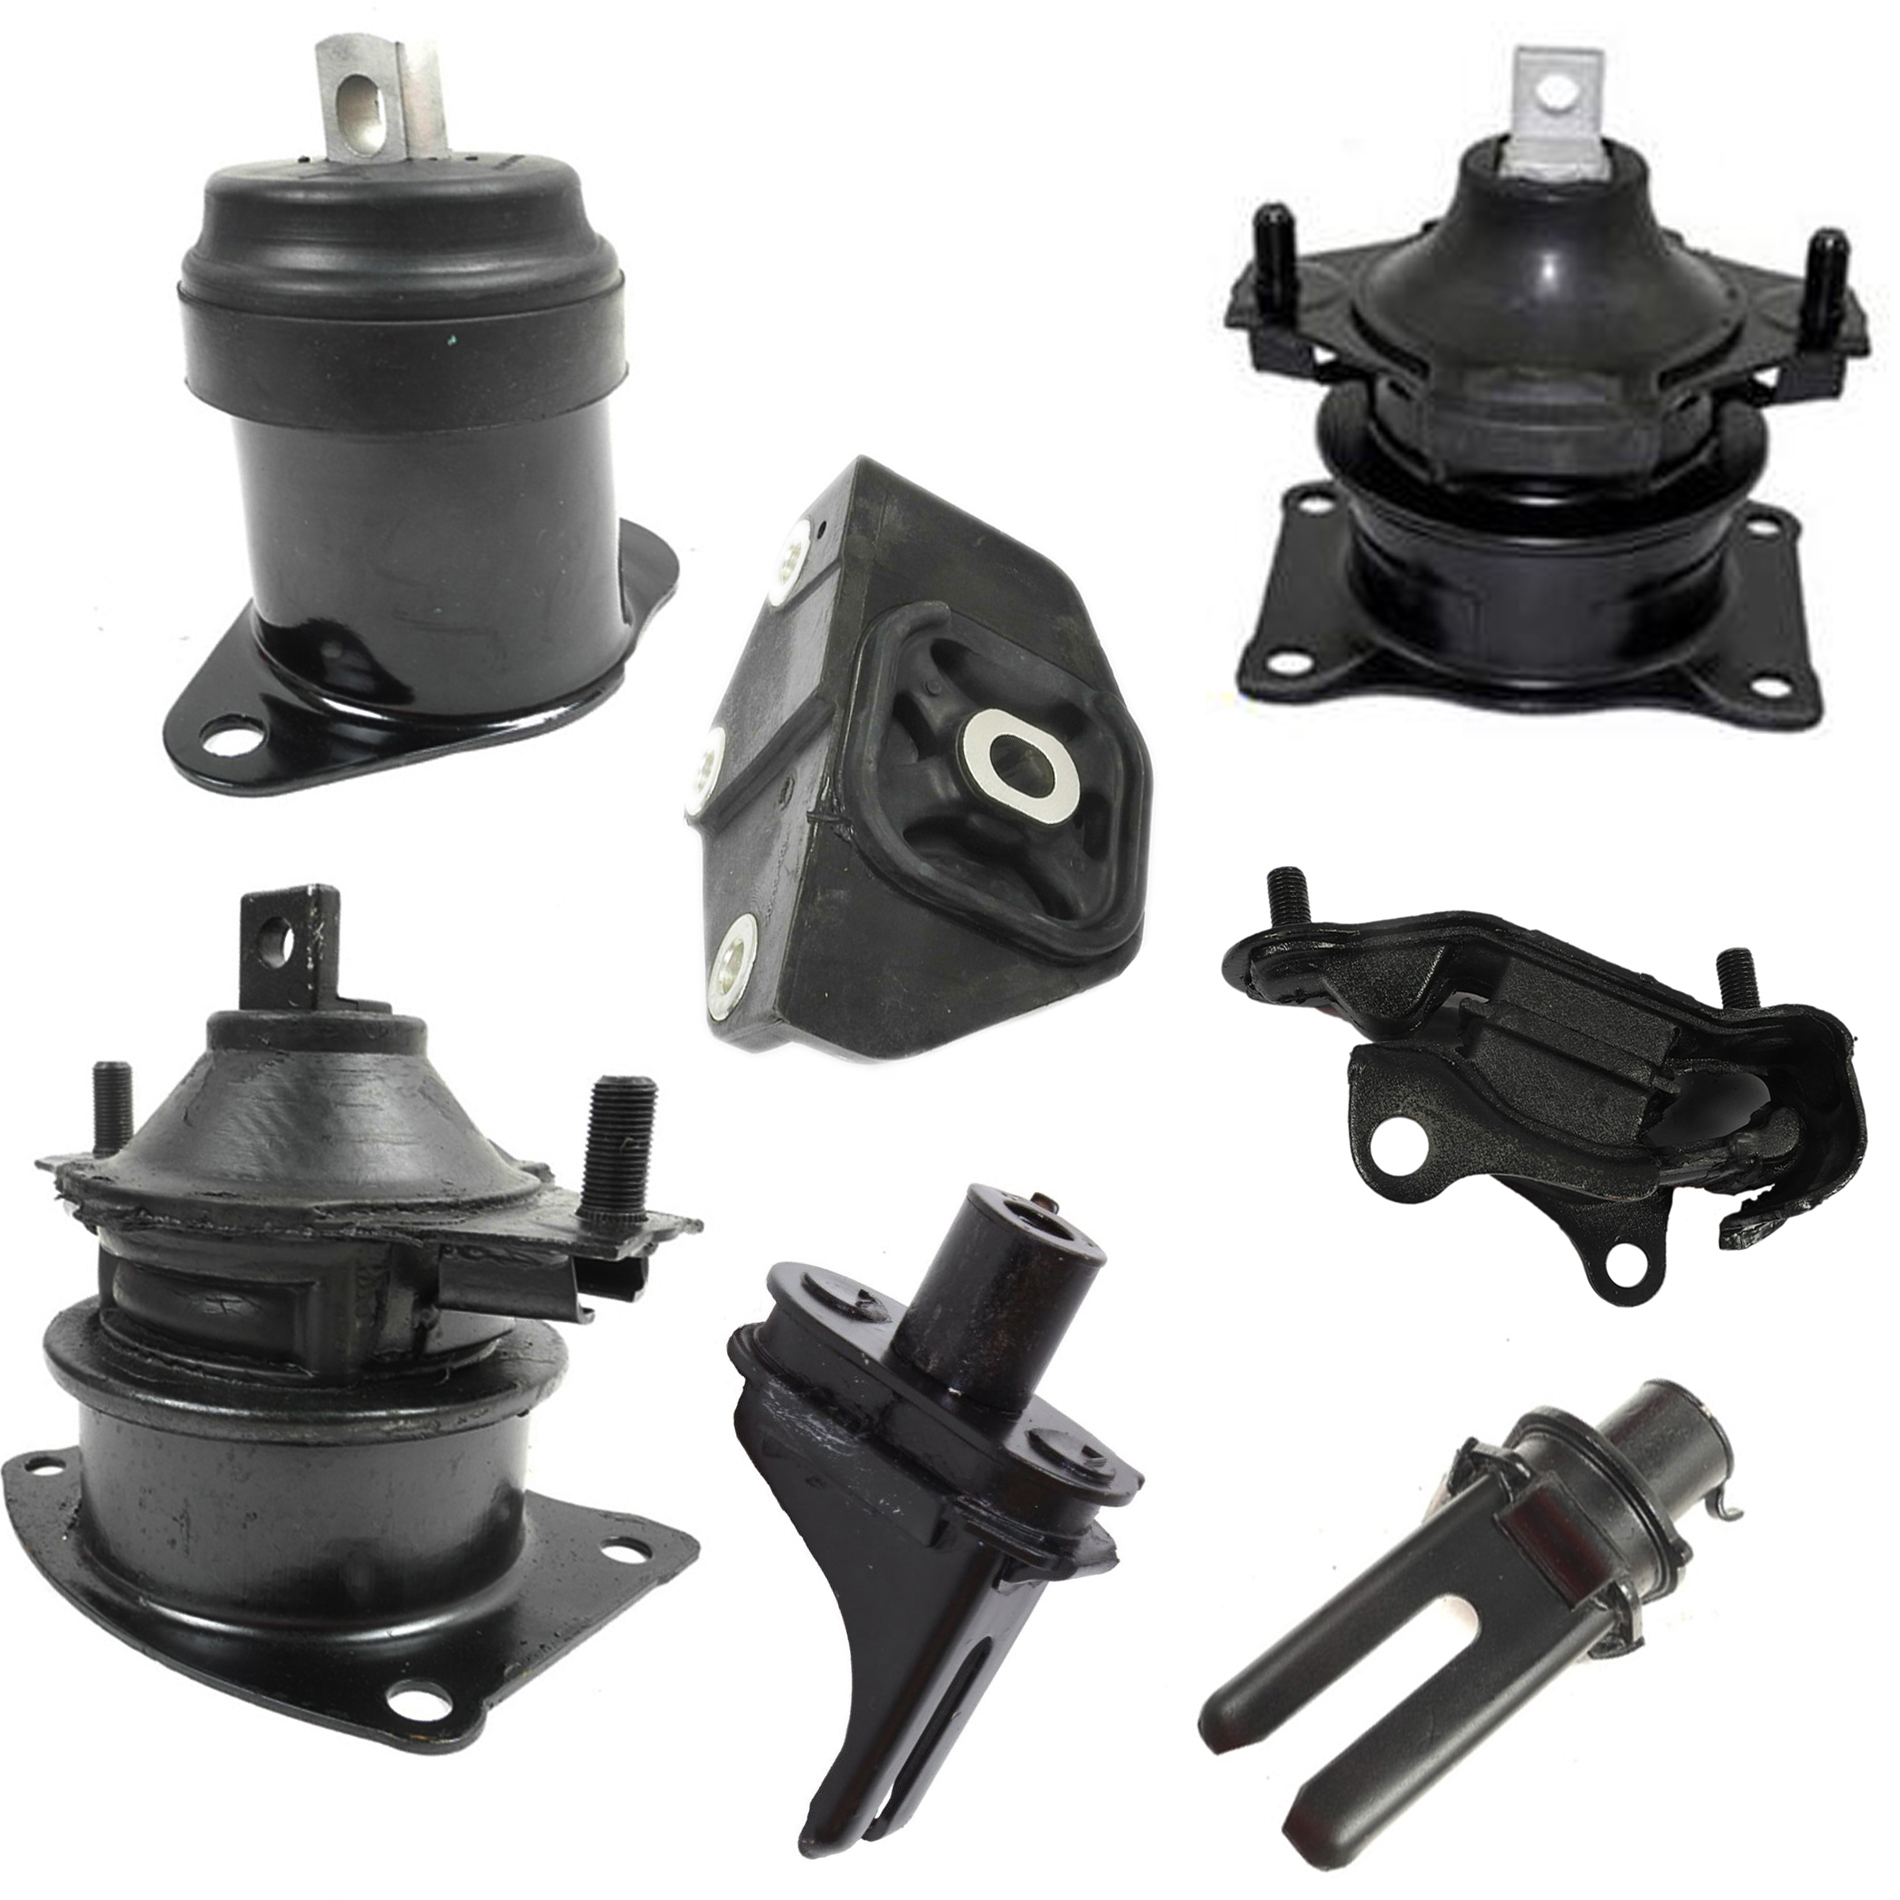 For 2004-2006 Acura TL 3.2L Engine Motor & Trans Mount Set